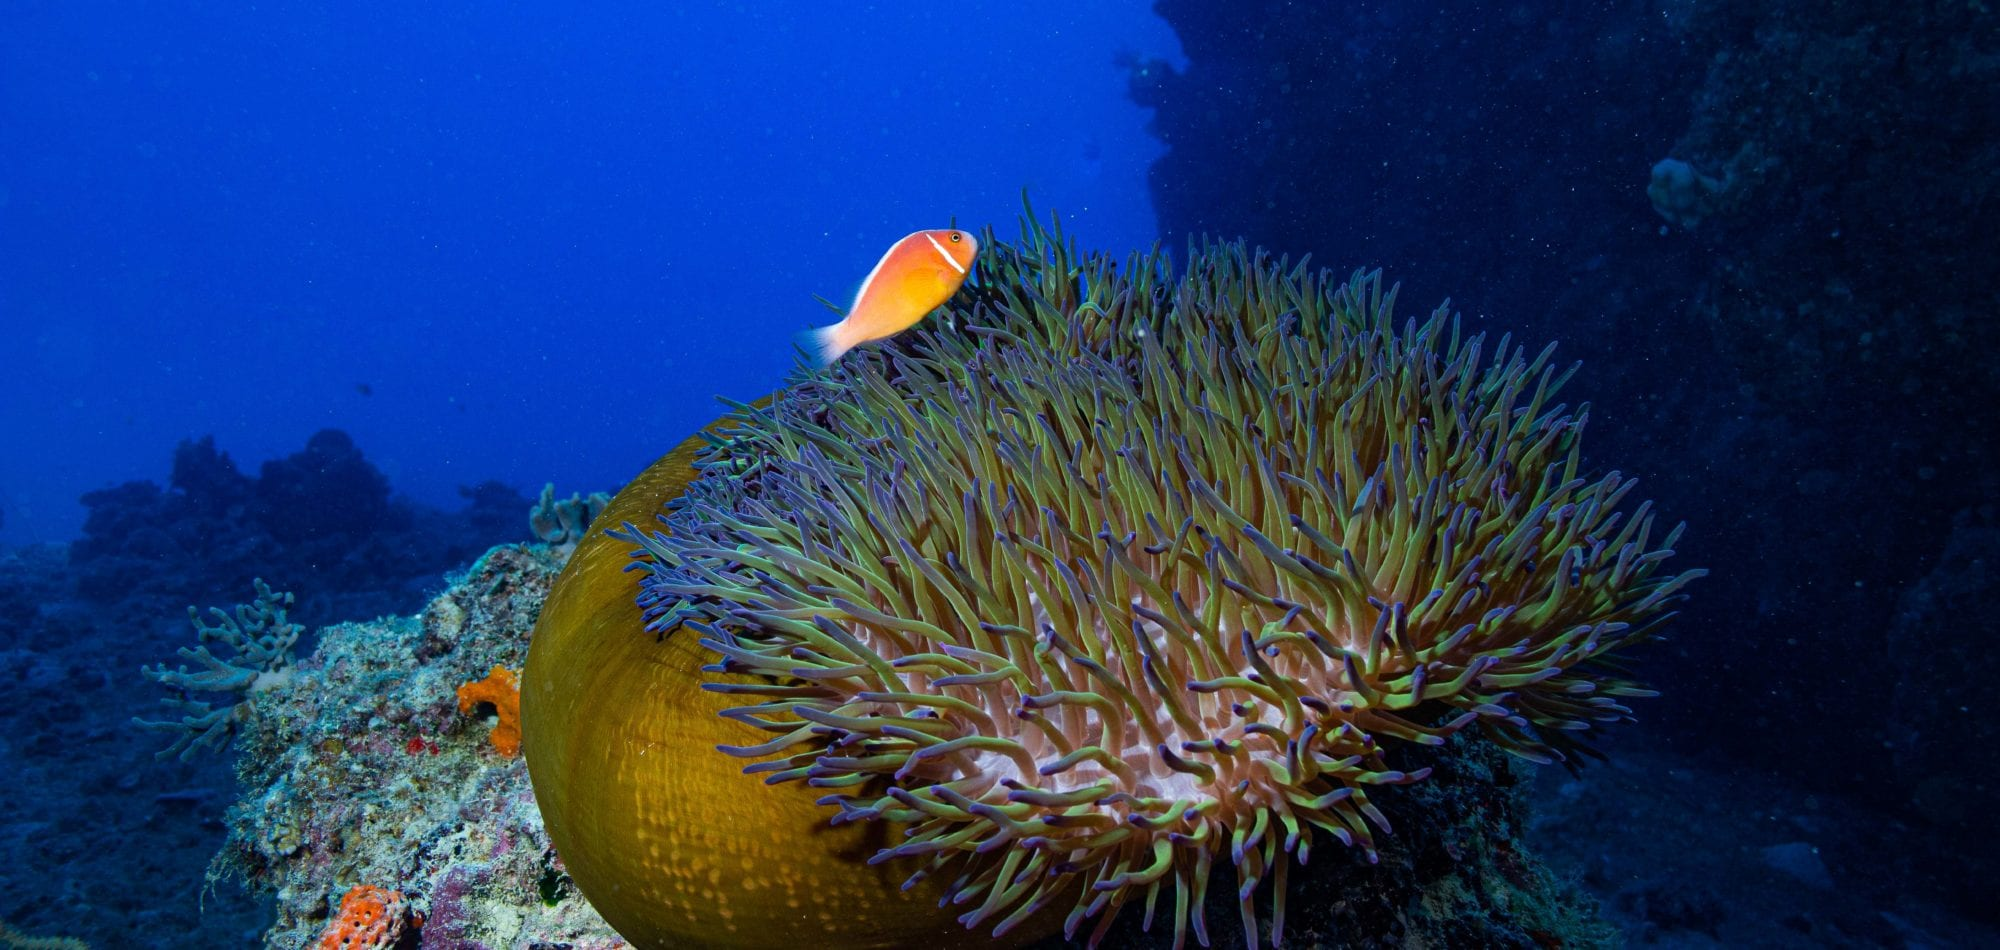 Cairns scuba diving day tour - fish and coral on the Great Barrier Reef, Queensland